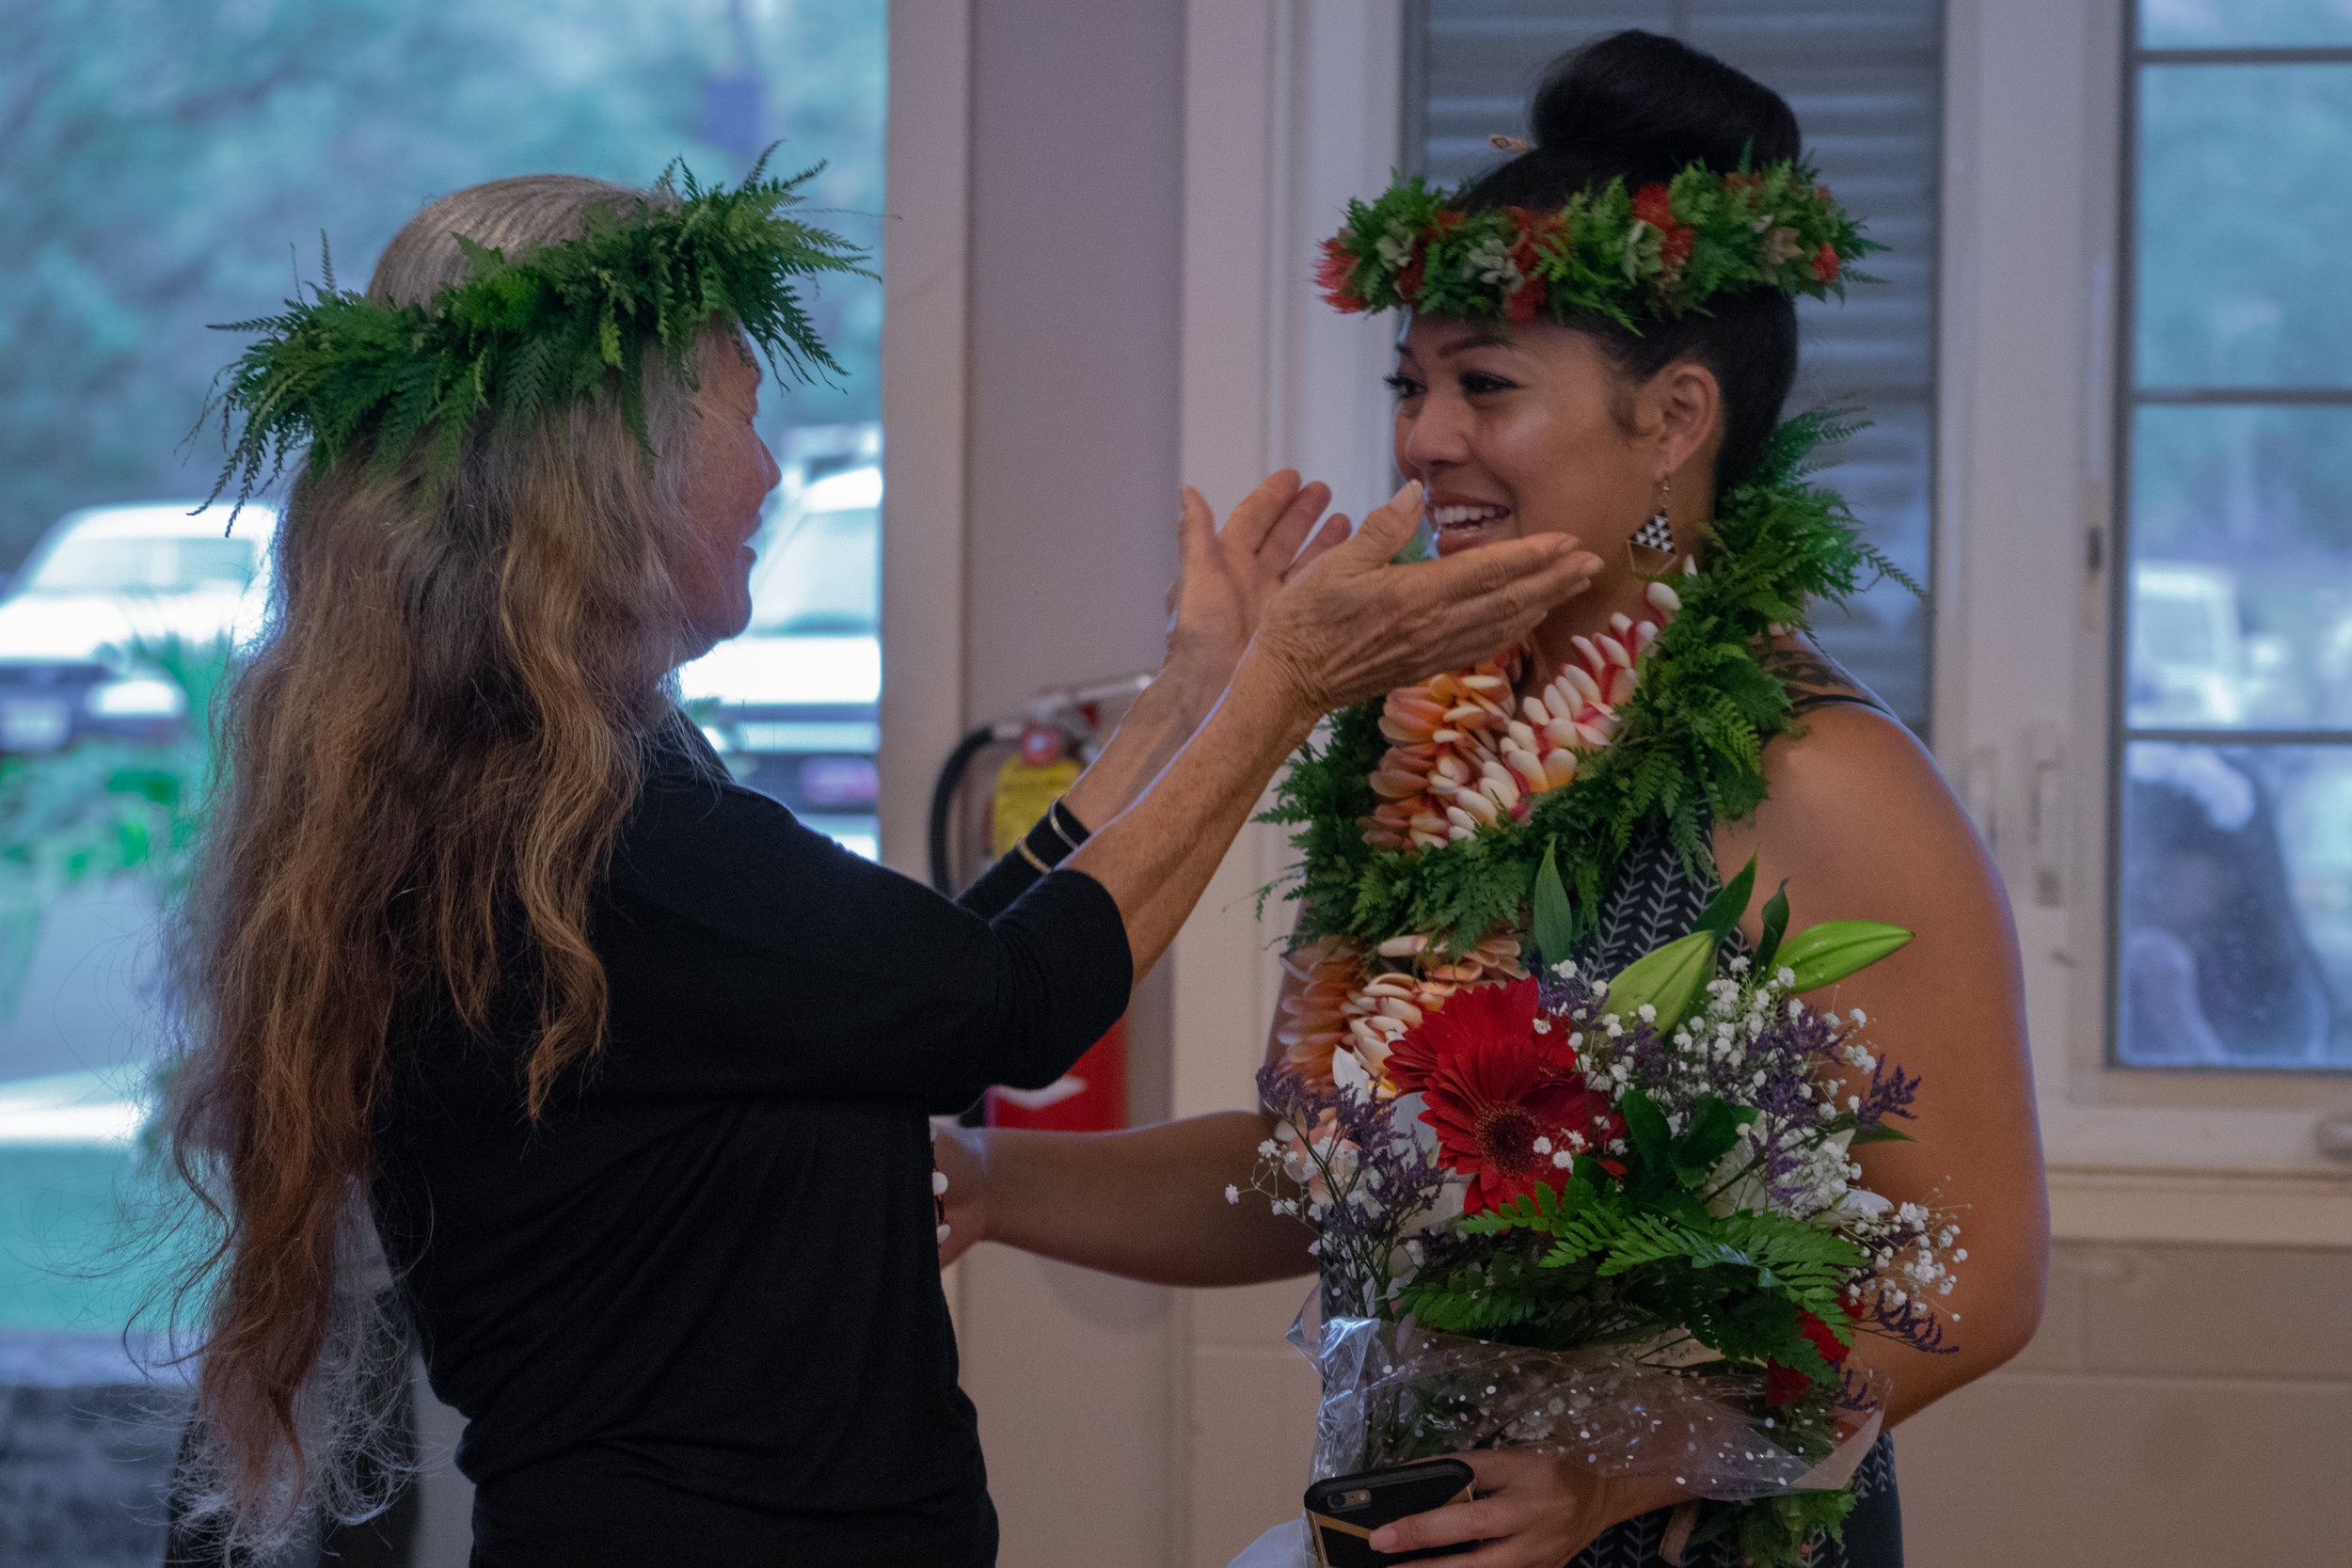 Native Hawaiian, Kanoelani Davis (right), is embraced by her kumu hula (hula instructor). Photo by Josiah Ching